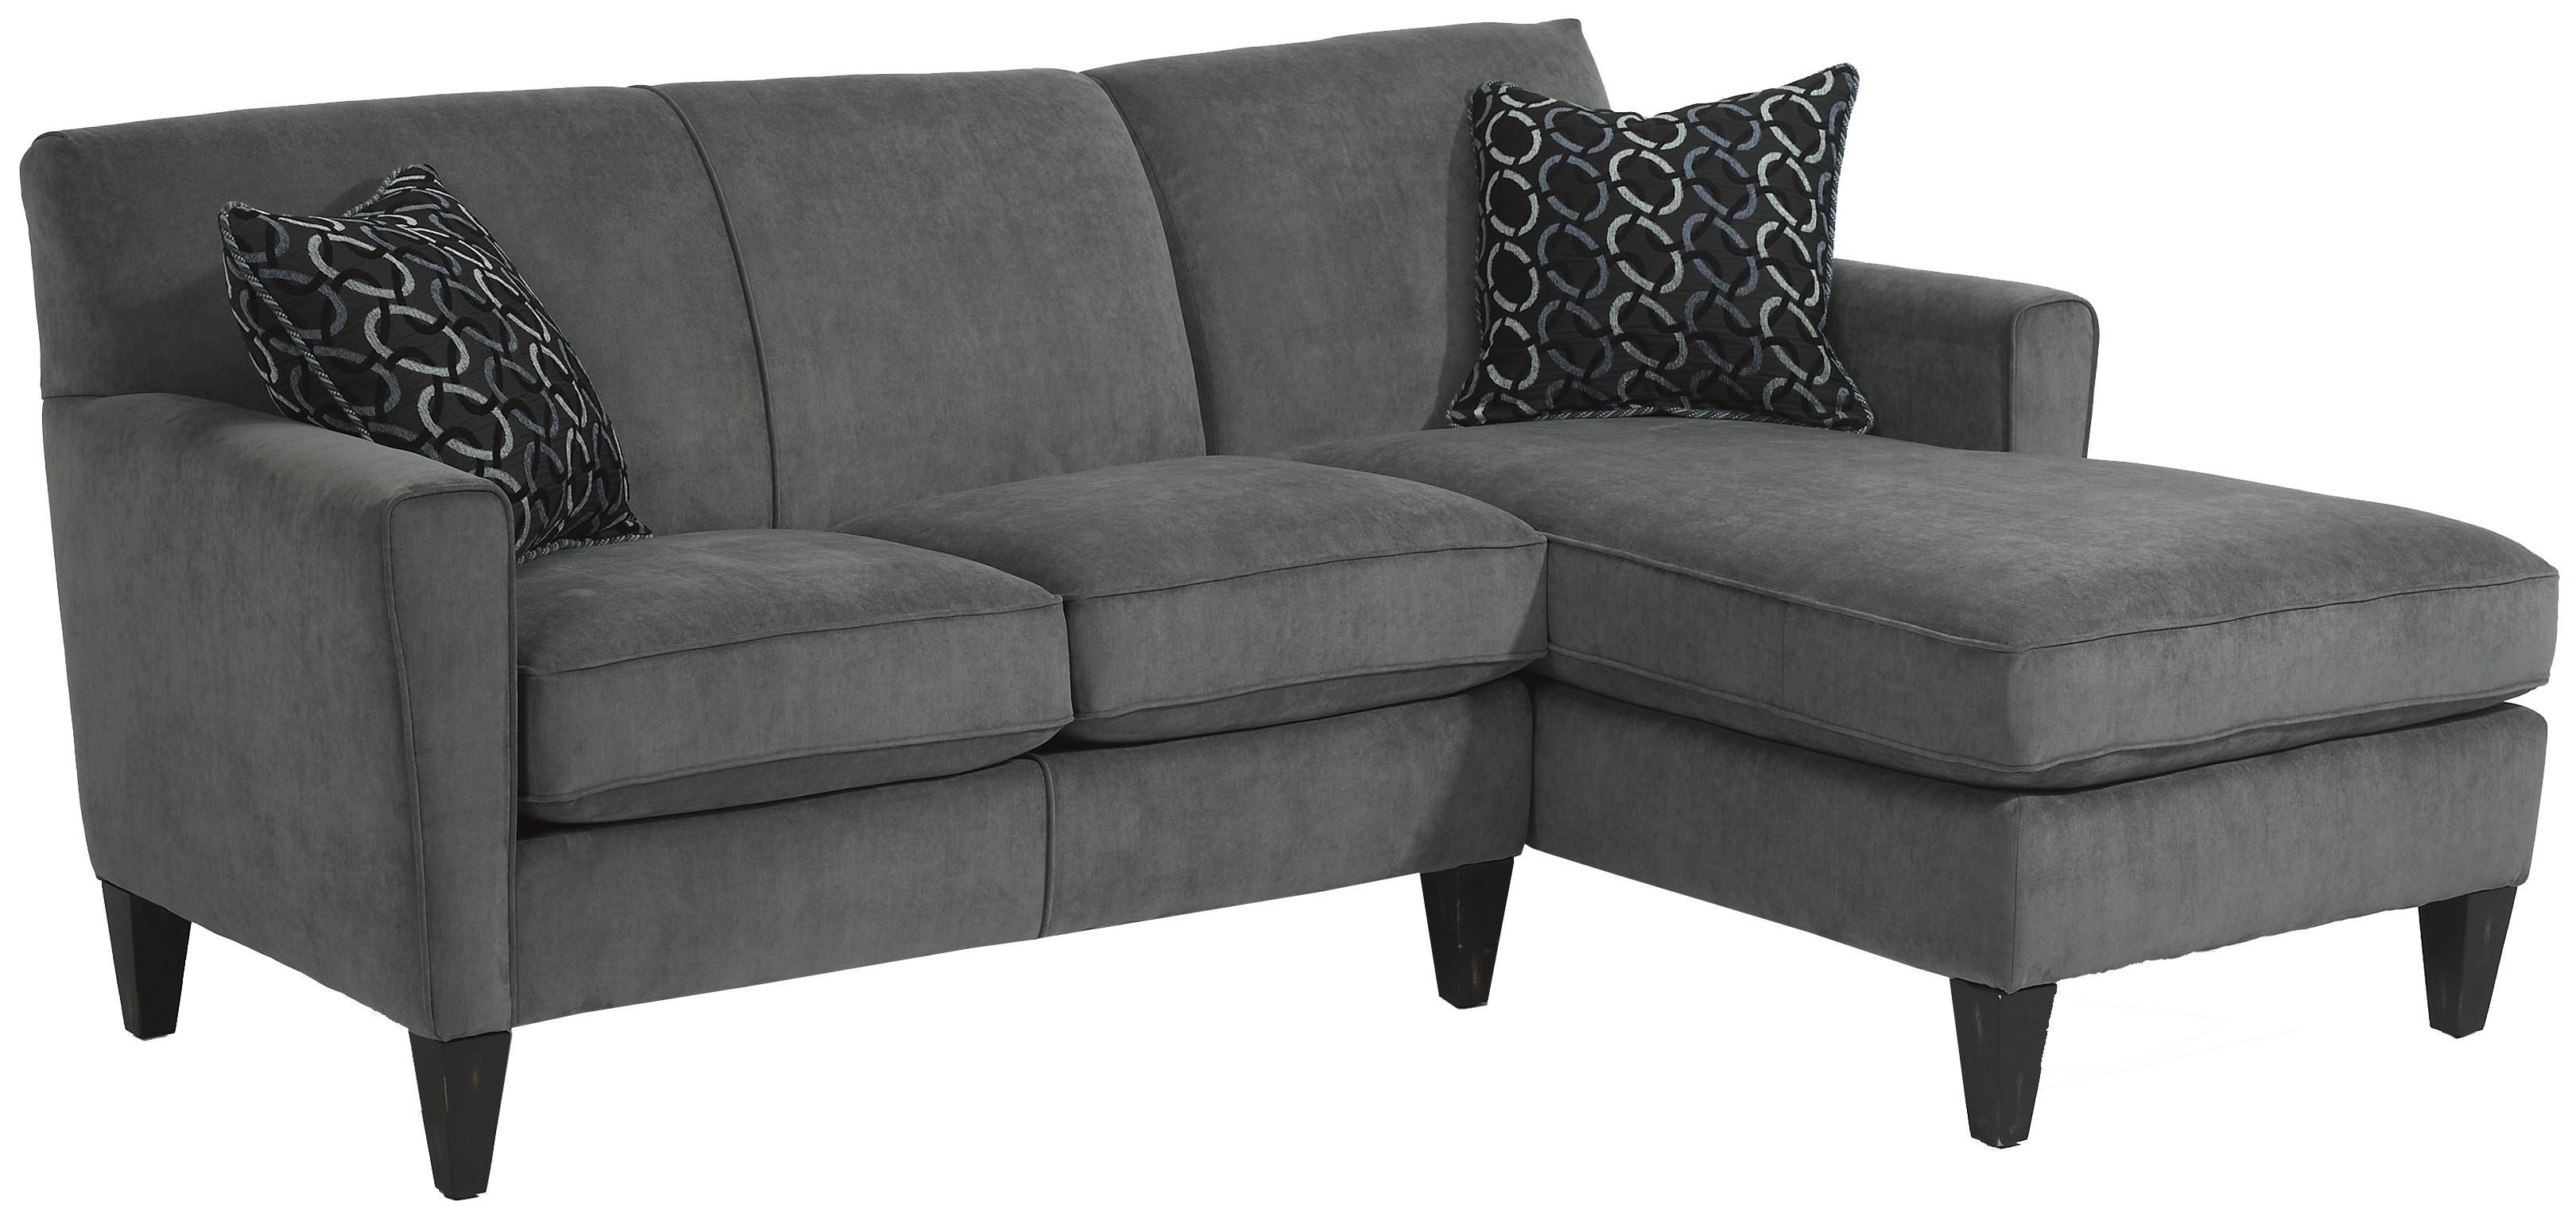 Flexsteel Digby Contemporary Sectional Sofa With Raf Chaise - Ahfa regarding Delano 2 Piece Sectionals With Raf Oversized Chaise (Image 20 of 30)